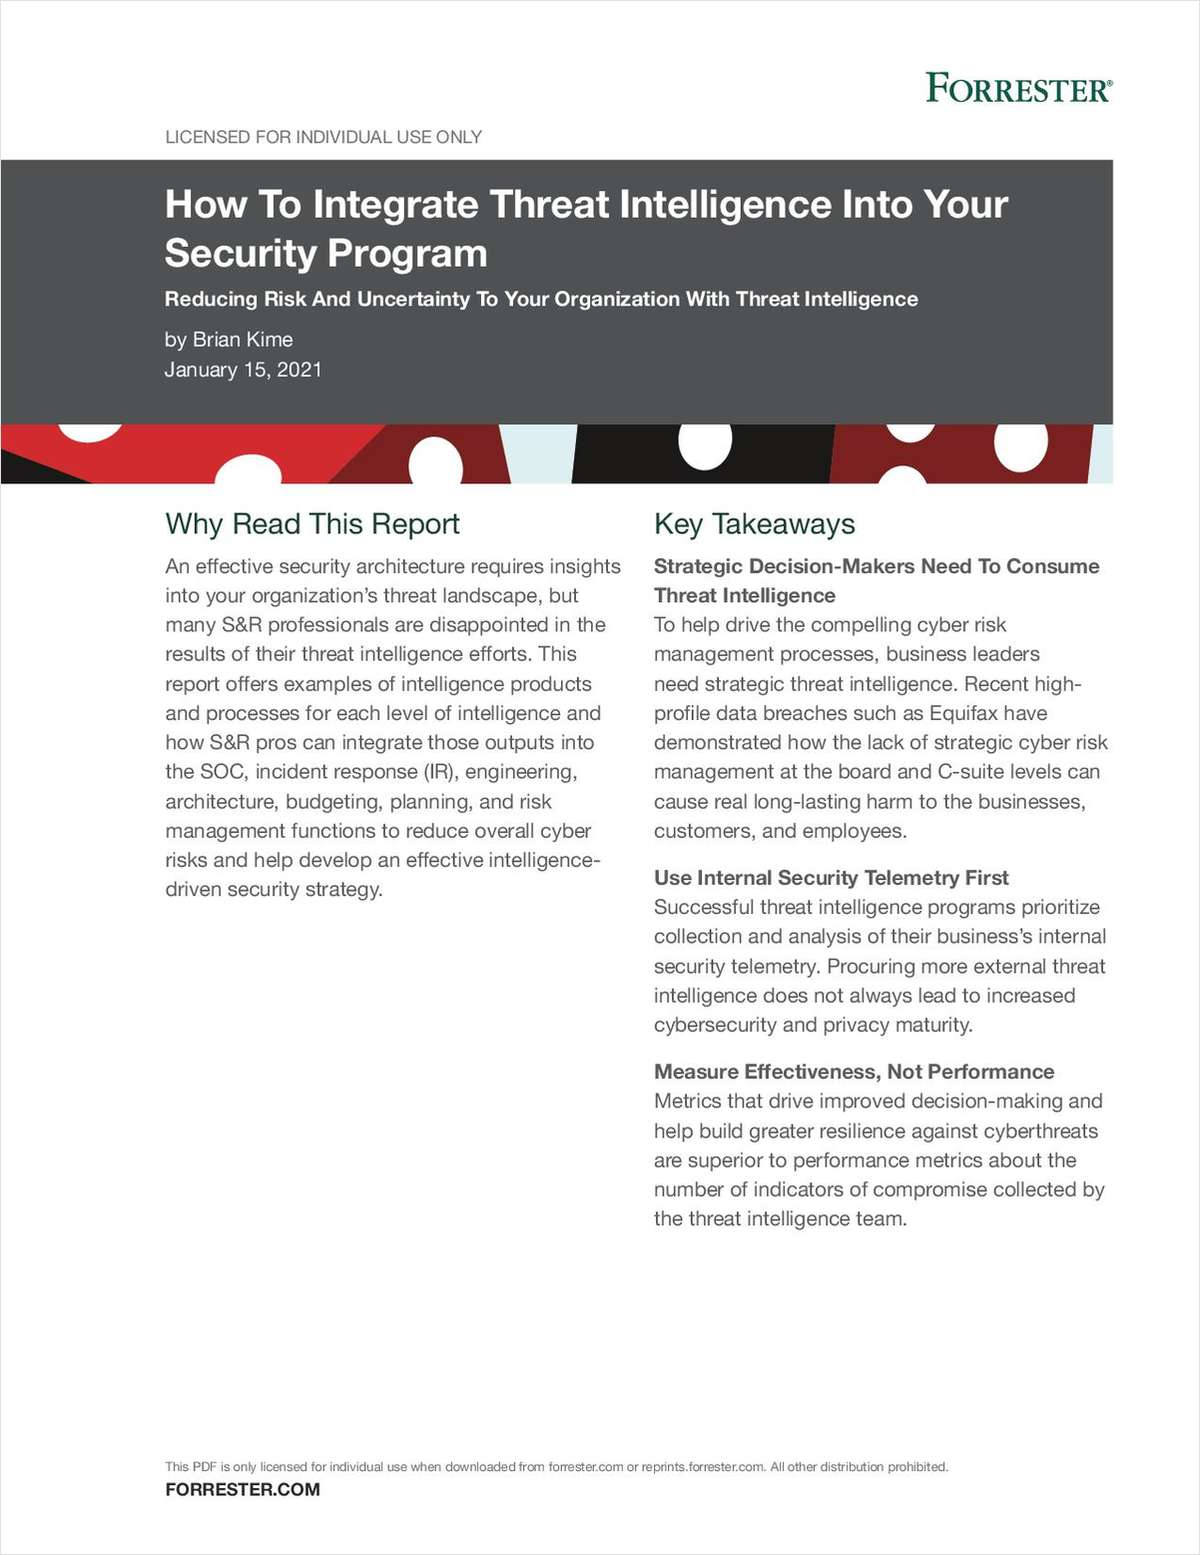 How to Integrate Threat Intelligence Into Your Security Program